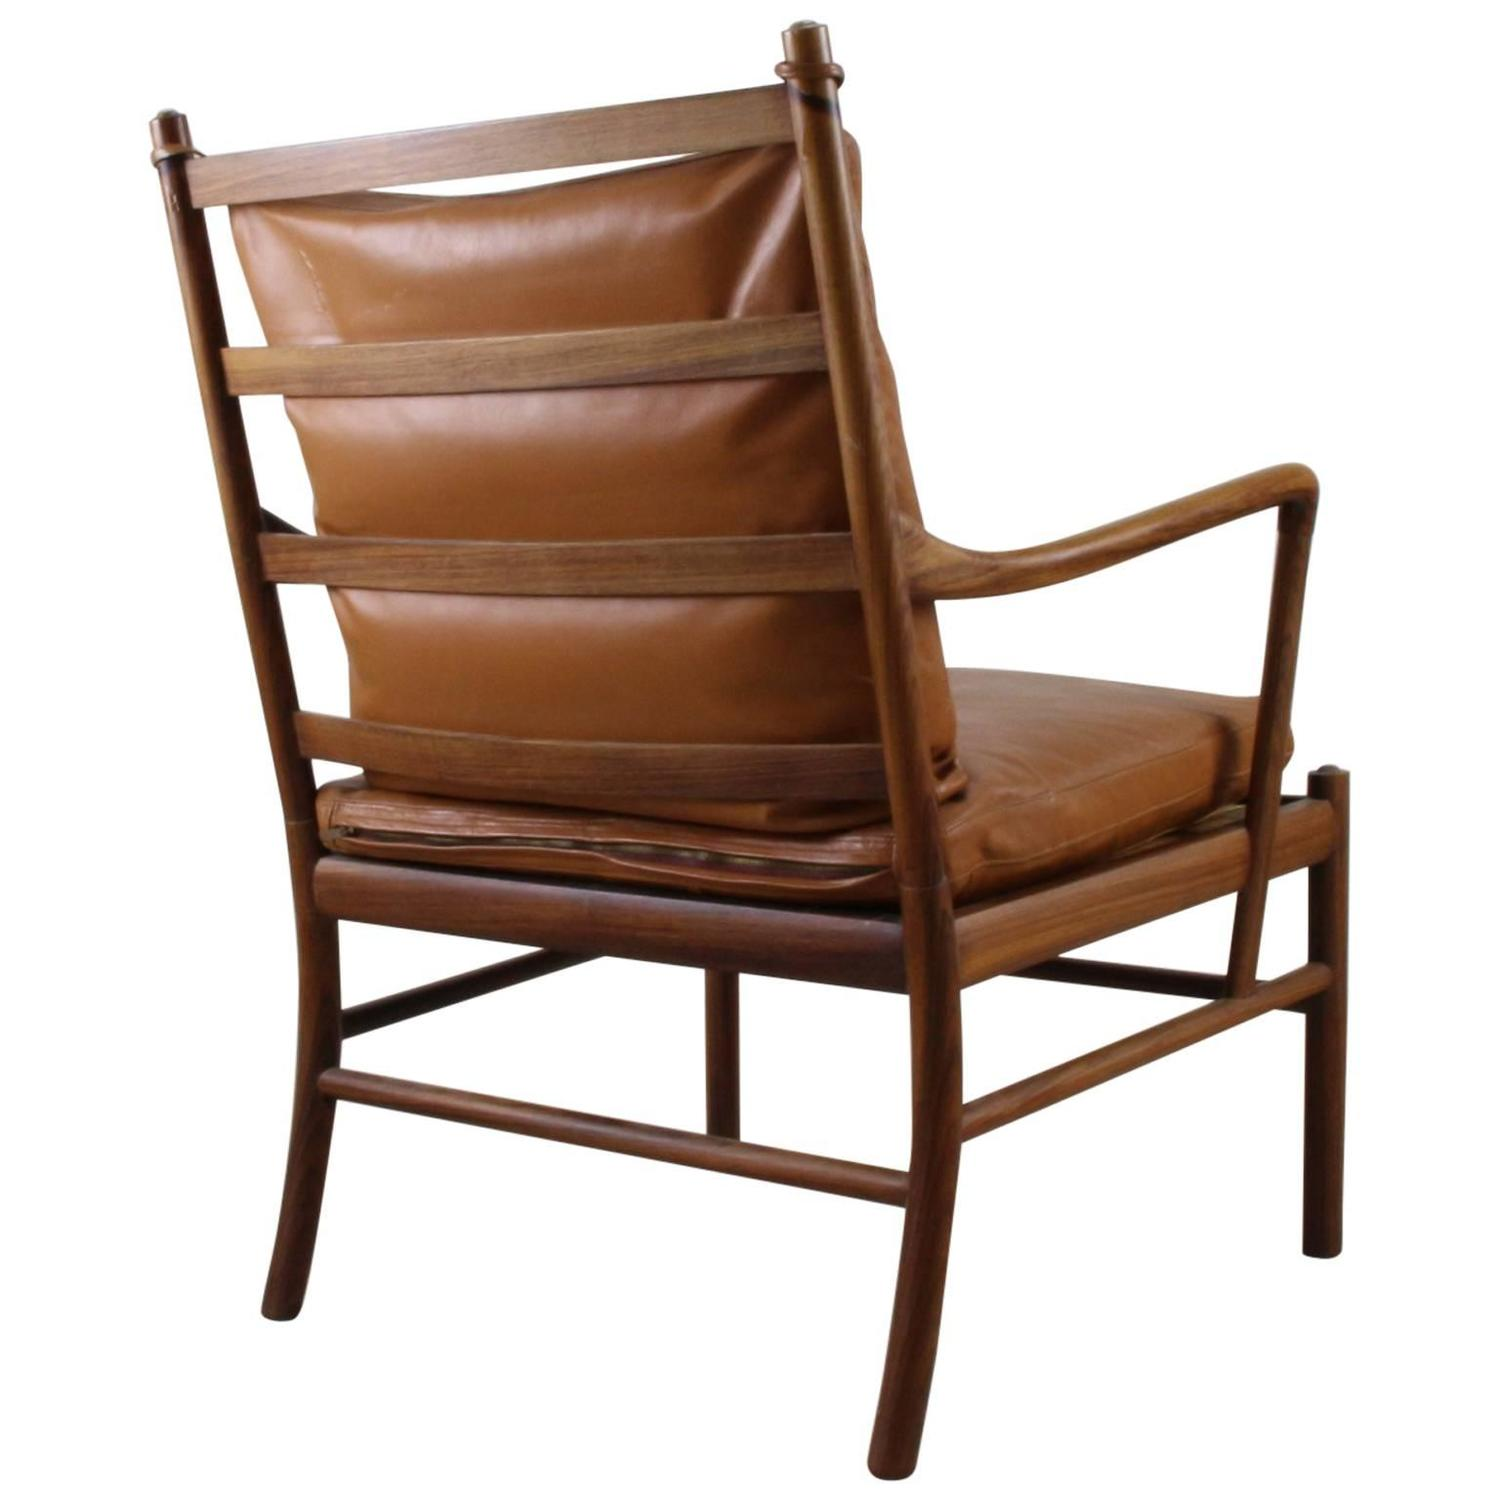 Original Vintage Ole Wanscher Colonial Chair by P Jeppesen at 1stdibs